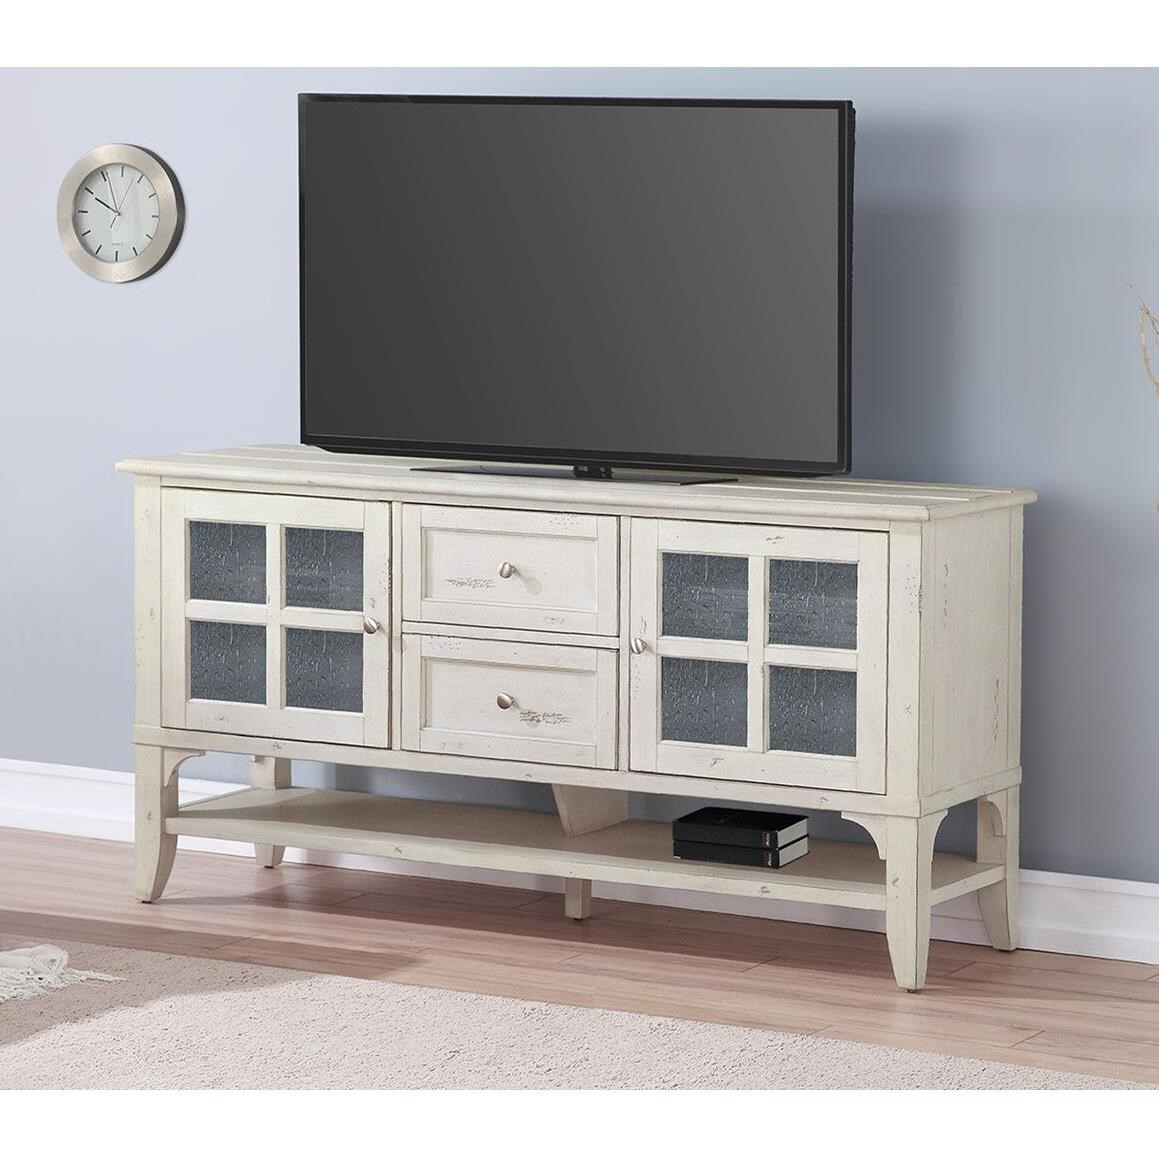 Parker House Hilton Hil 63 Casual 63 In Tv Console